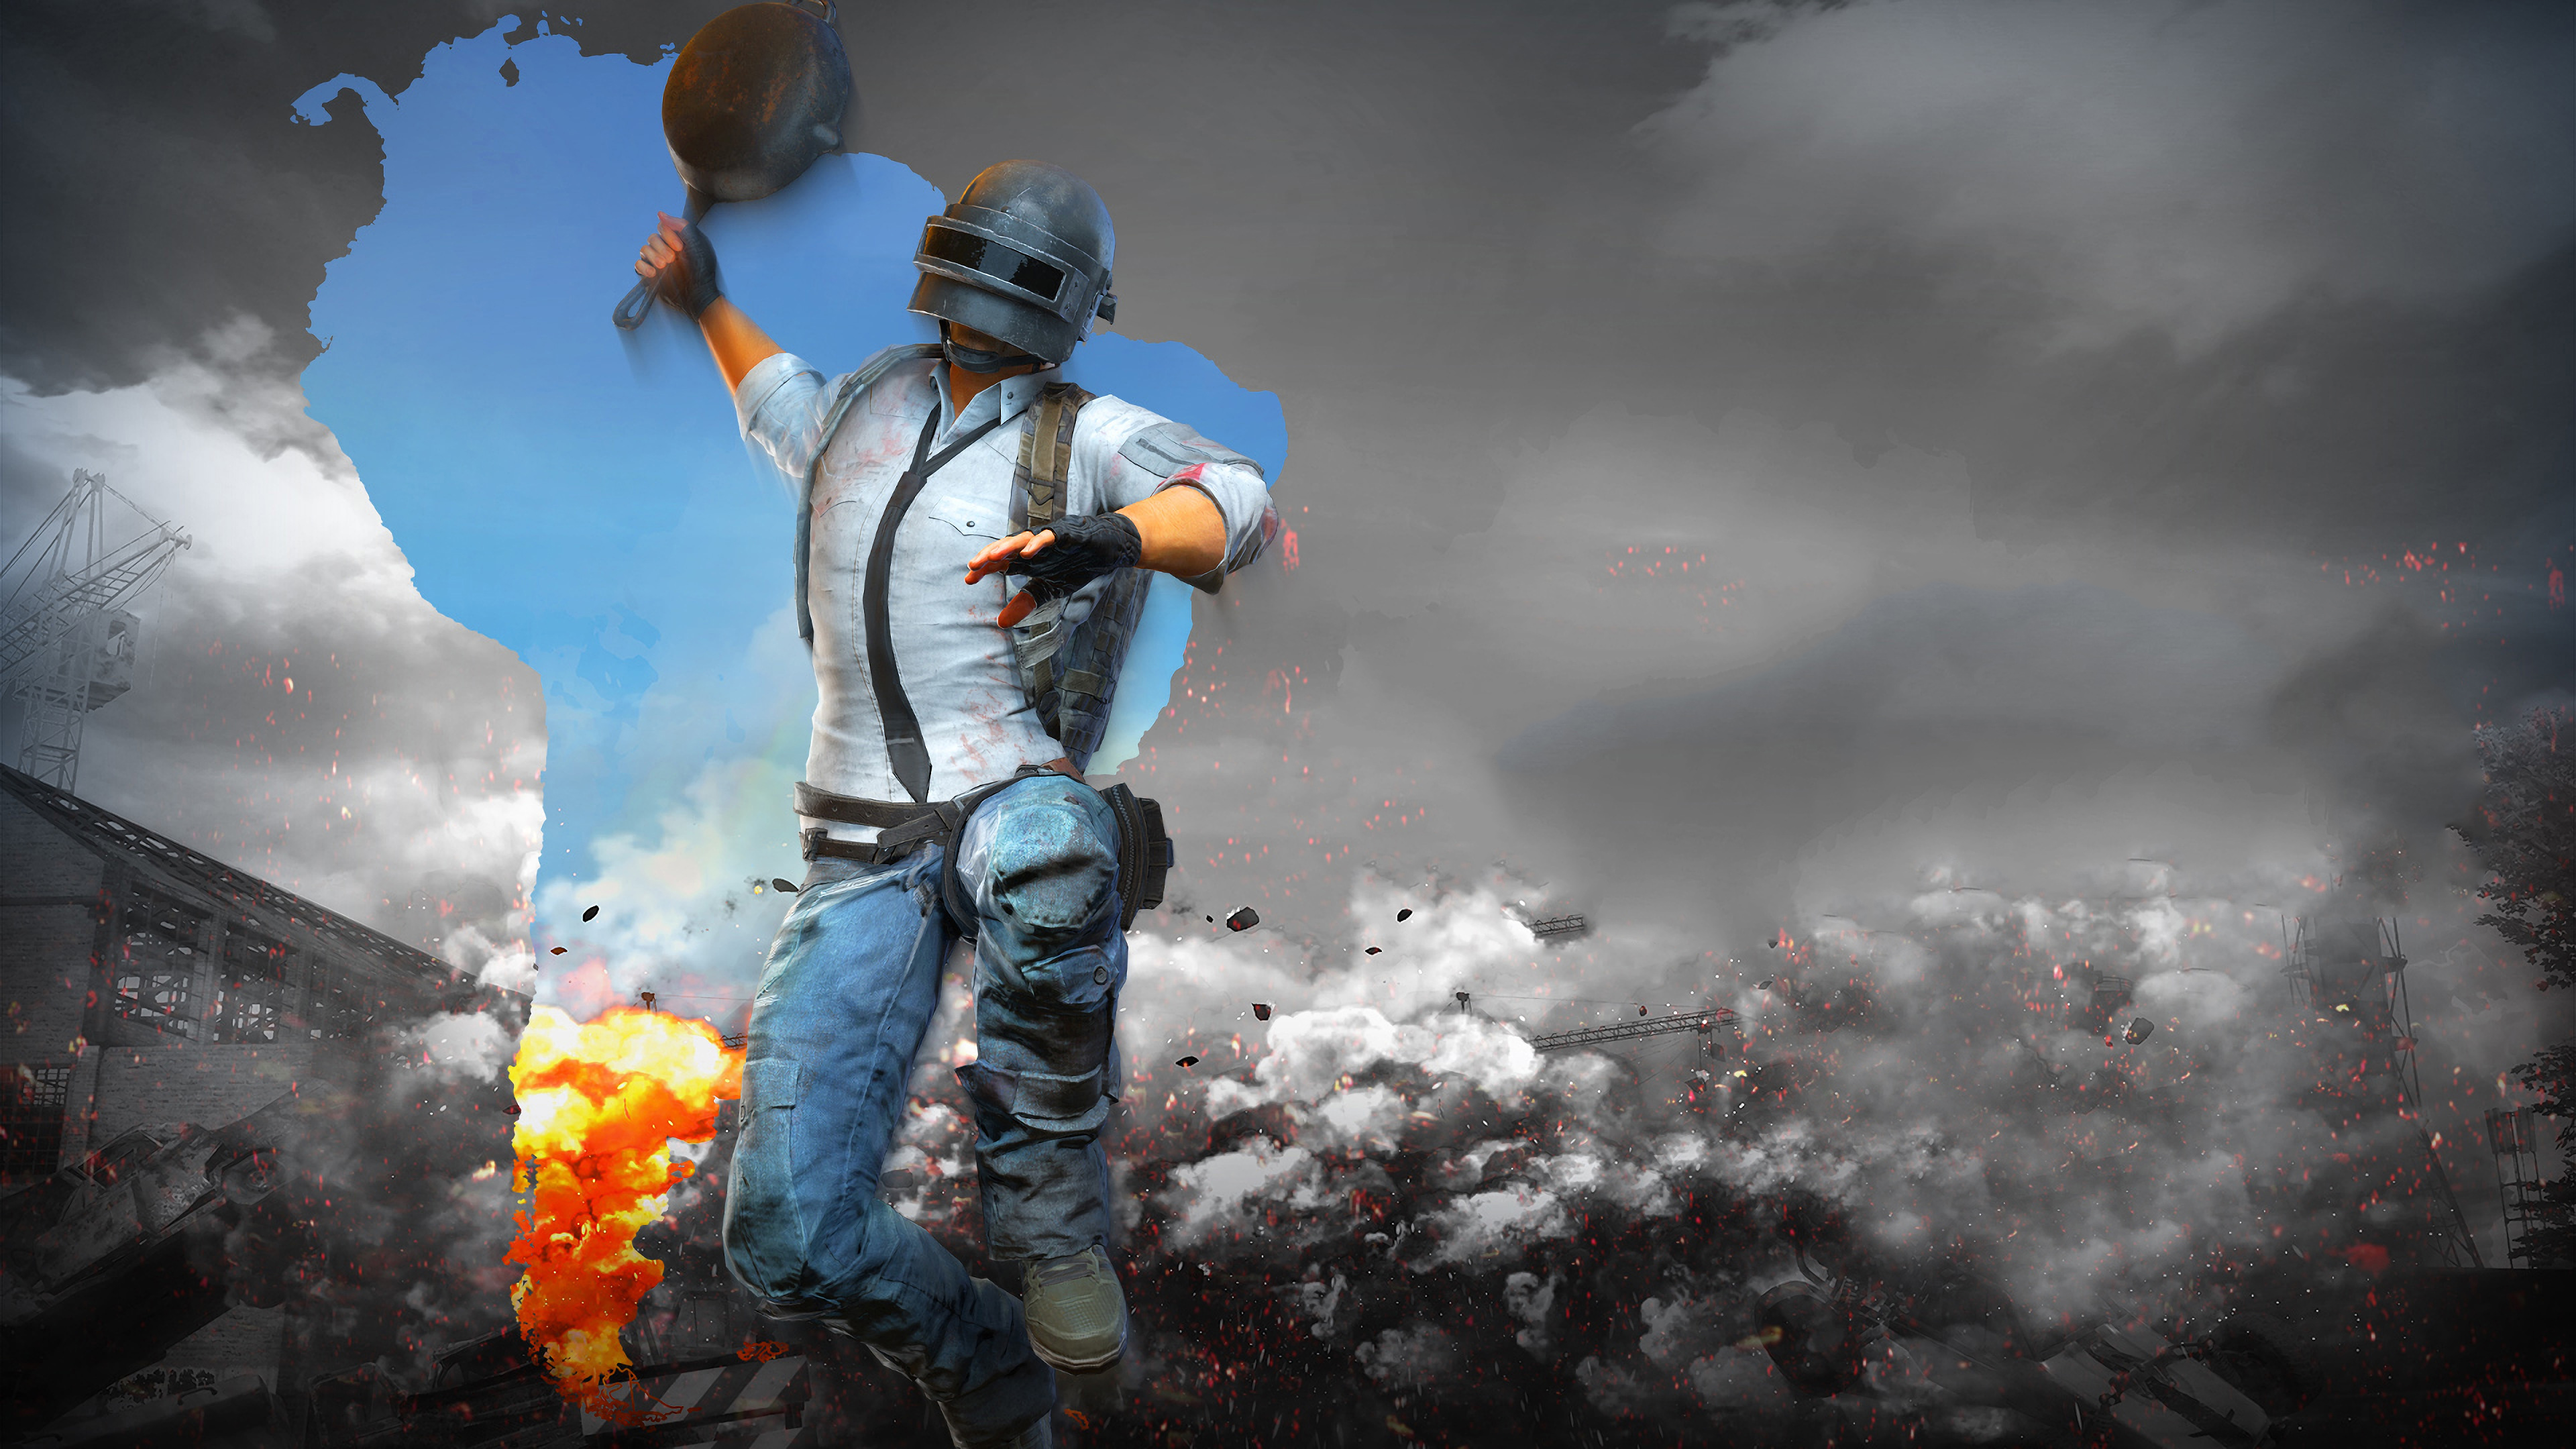 1920x1080 Pubg Characters 4k Laptop Full Hd 1080p Hd 4k: 1920x1080 PUBG Helmet Man With Pan 4k Laptop Full HD 1080P